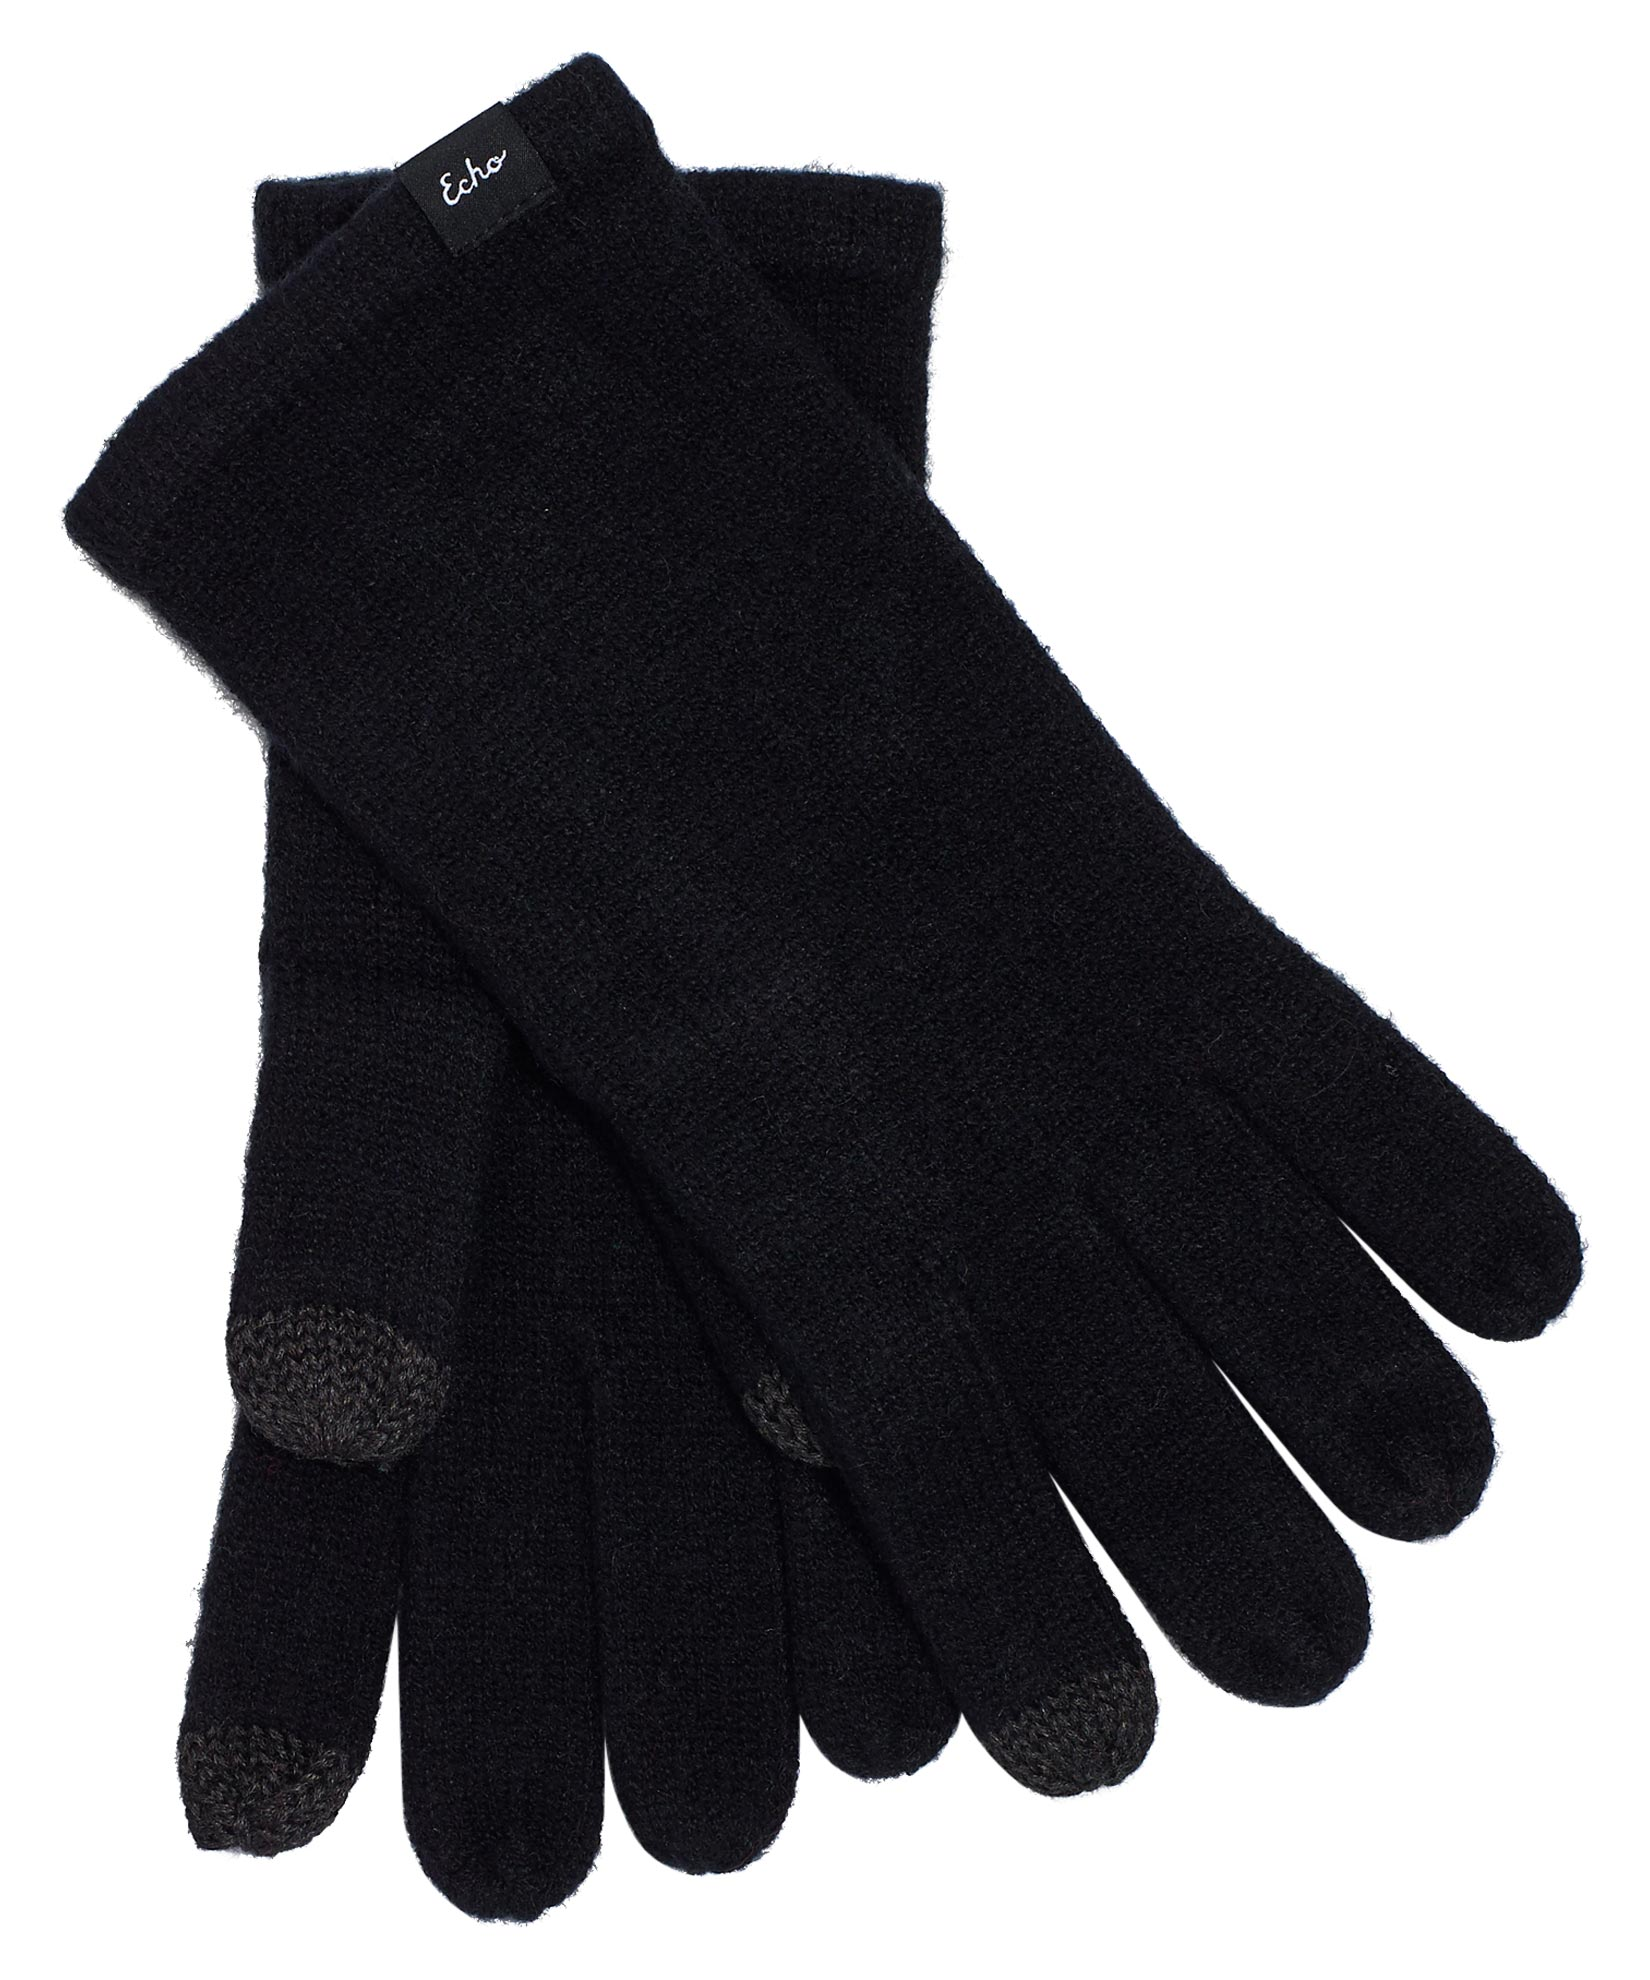 Echo Black - Echo Knit Touch Glove